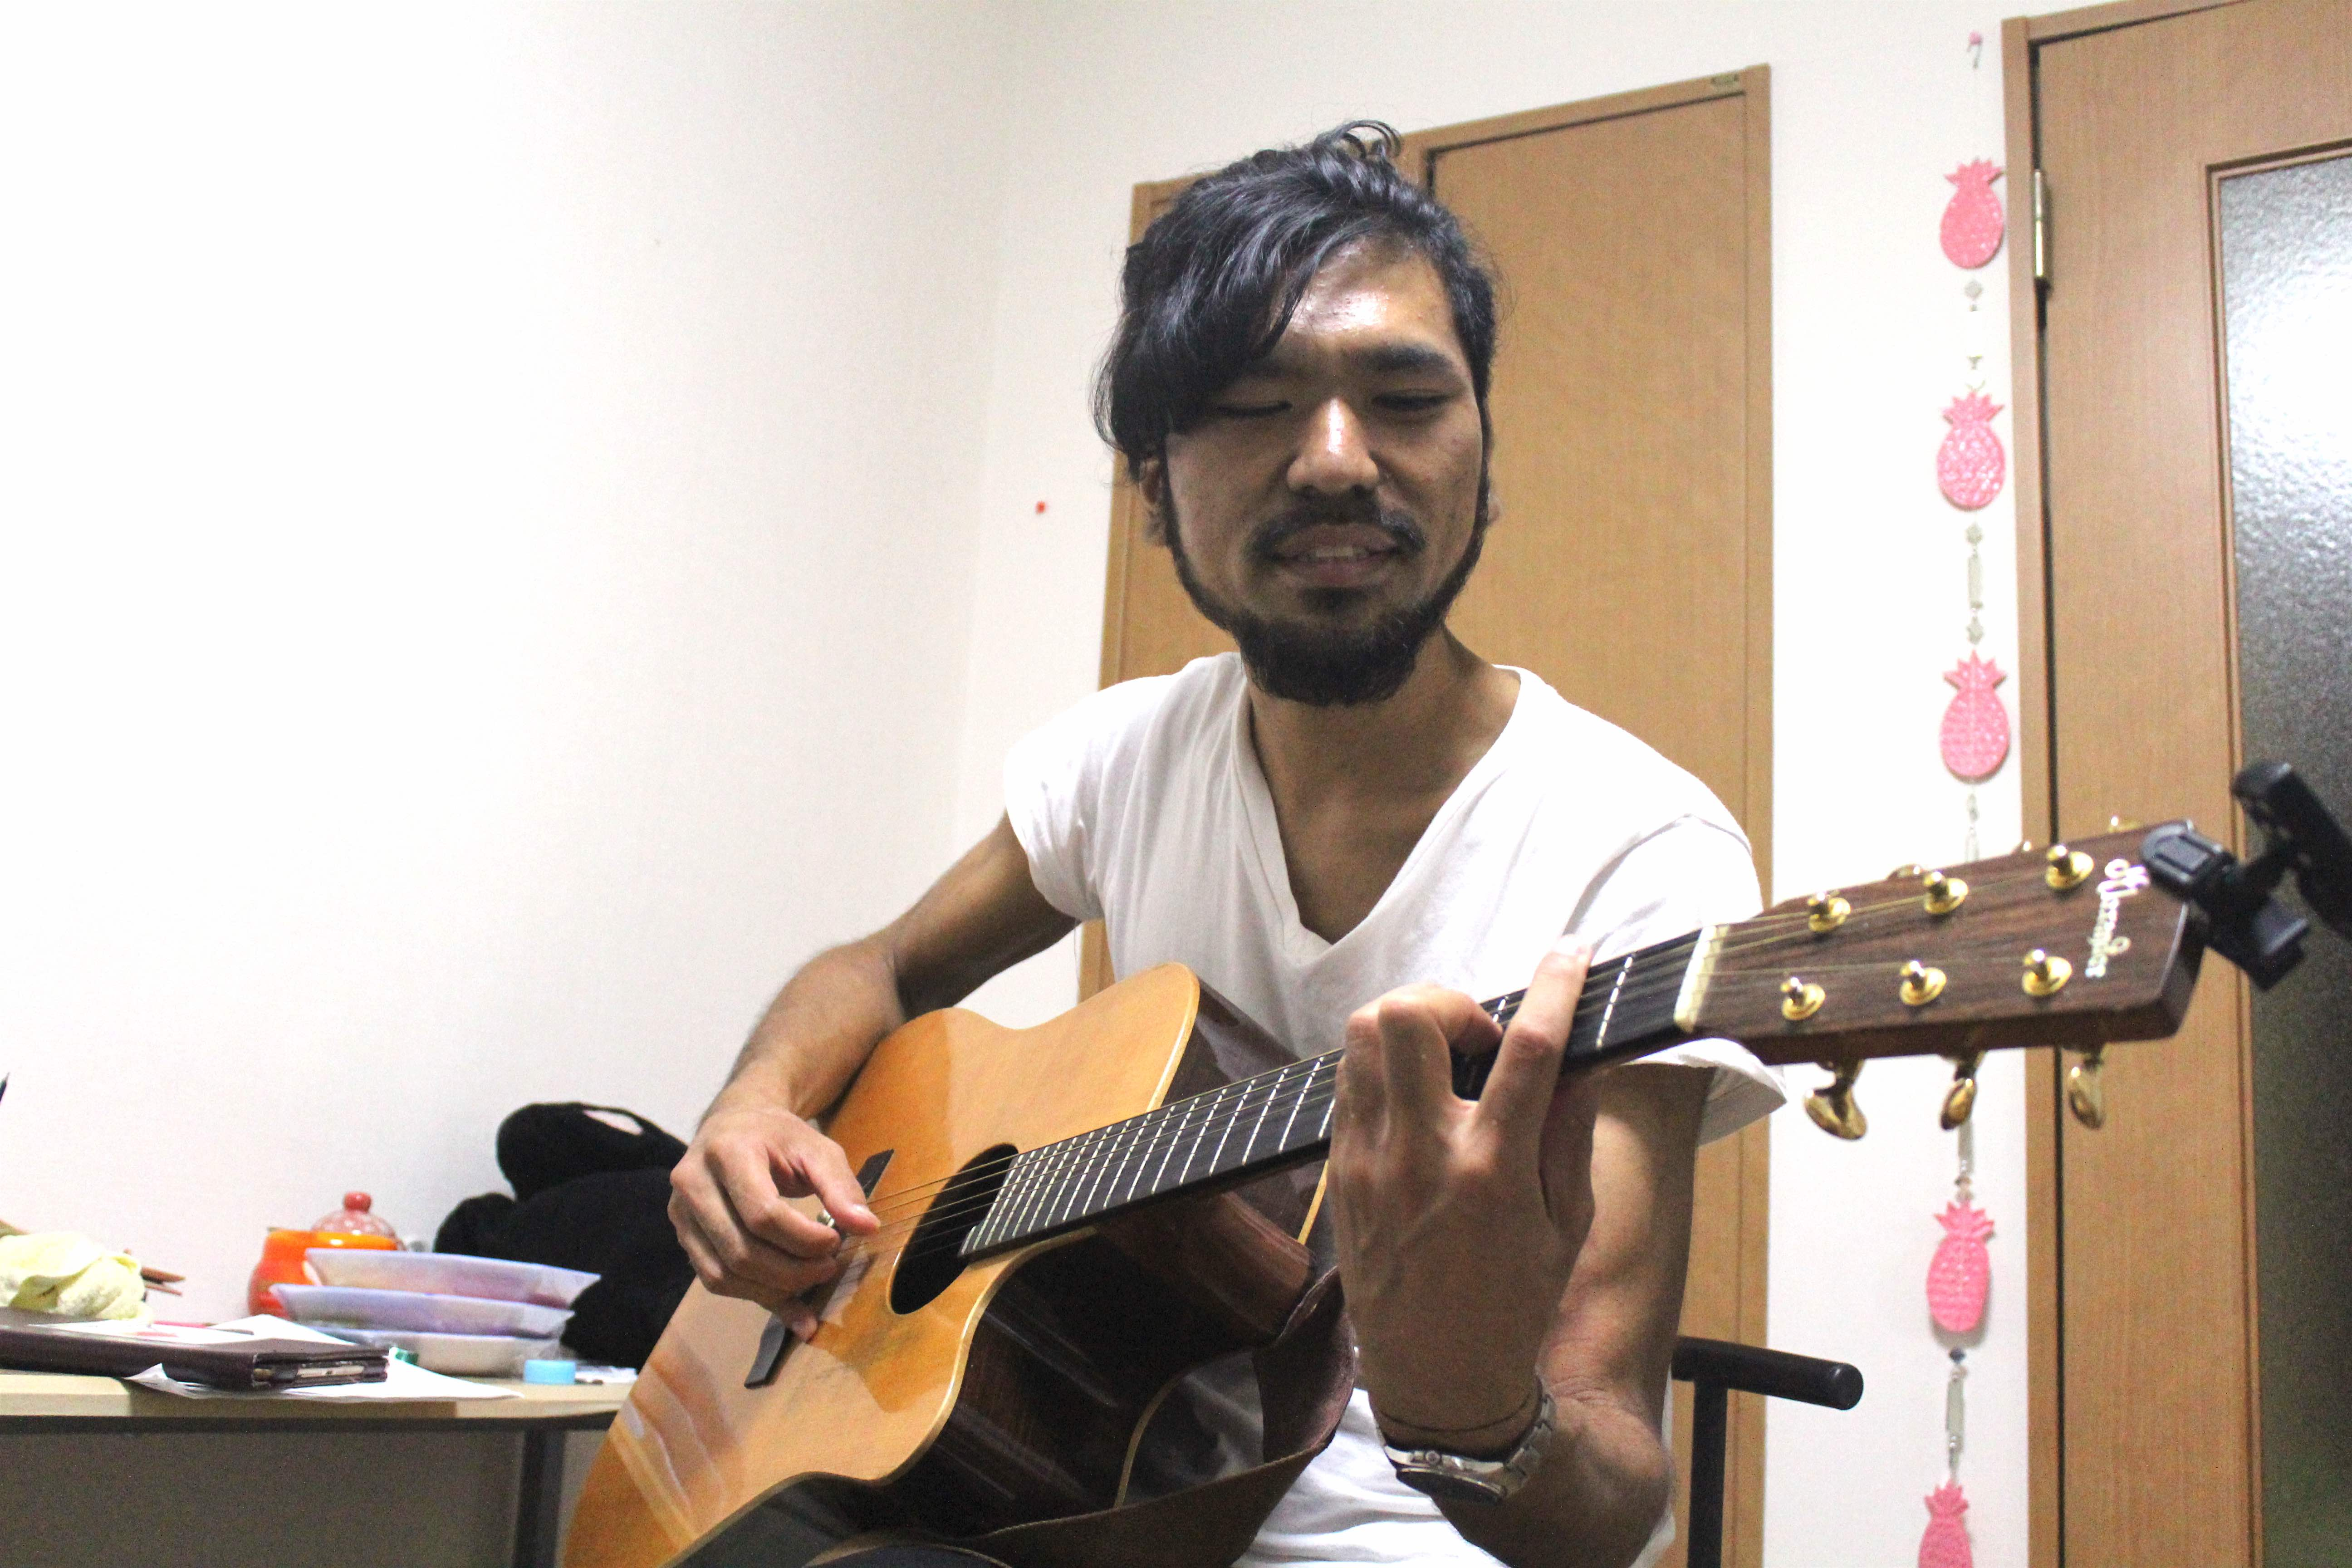 A picture of Yusuke with a guitar